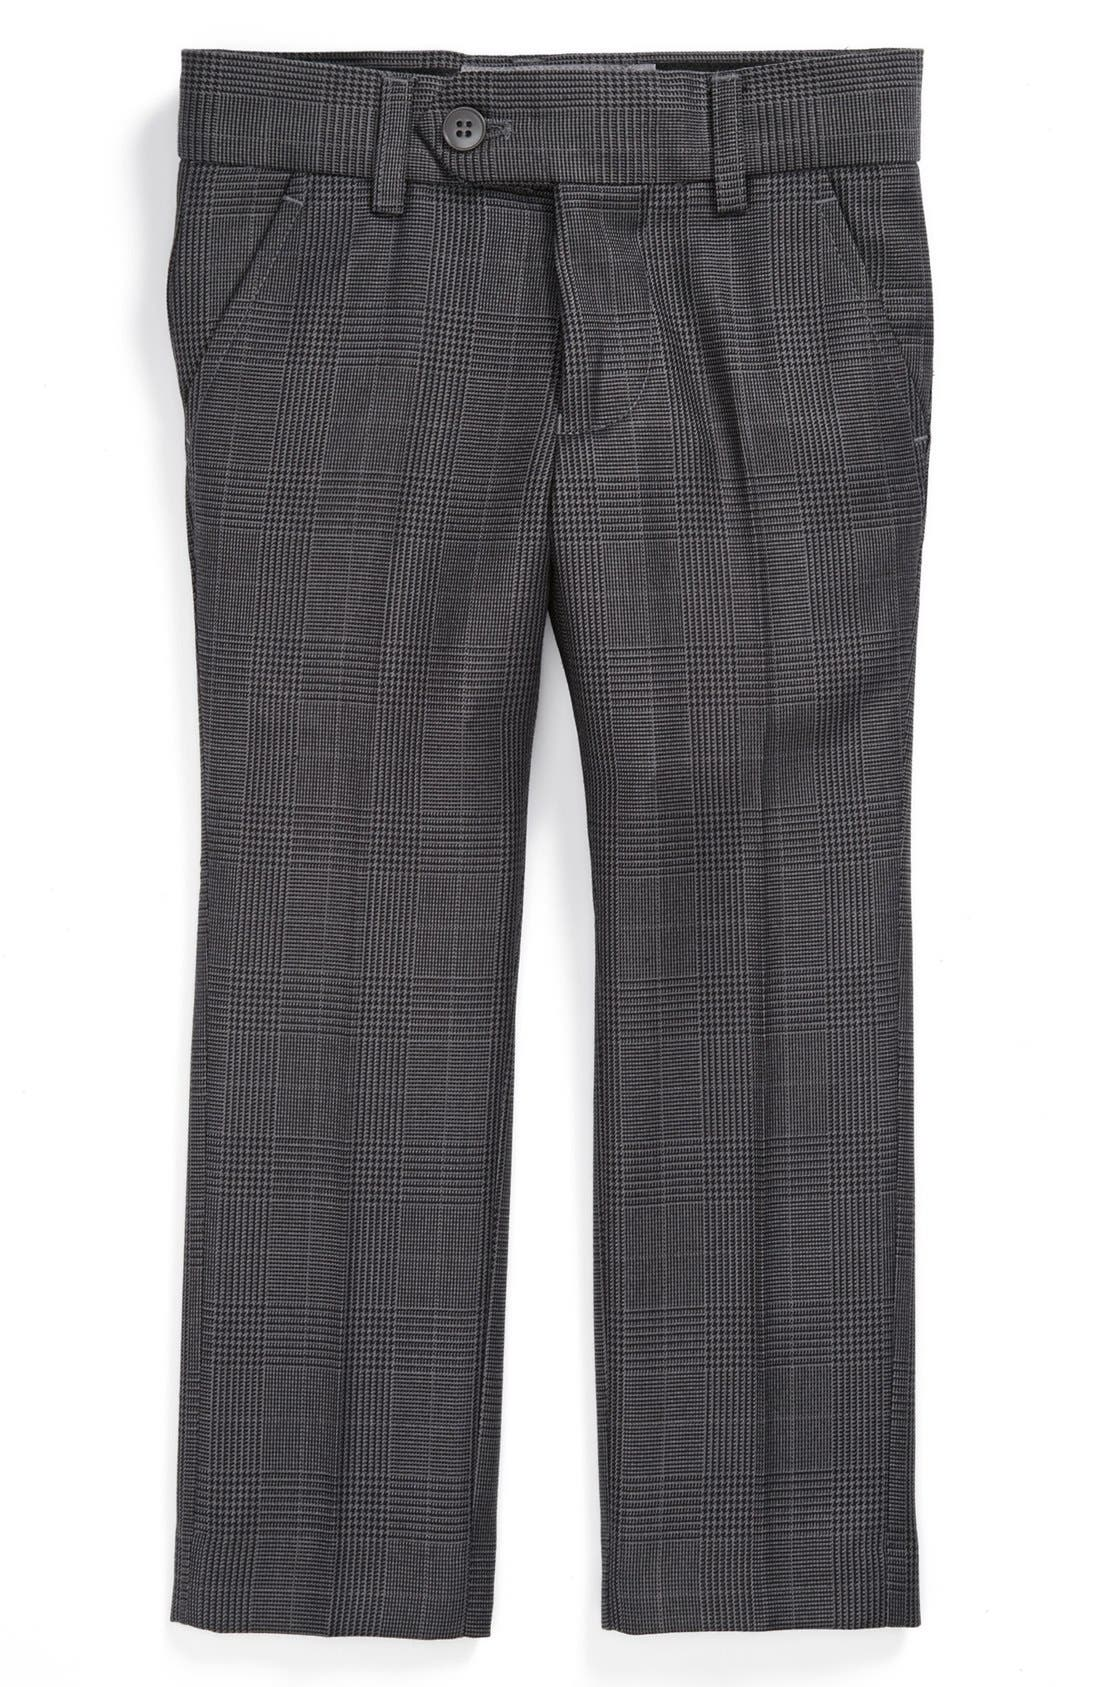 Main Image - Appaman Glen Plaid Trousers (Toddler Boys)